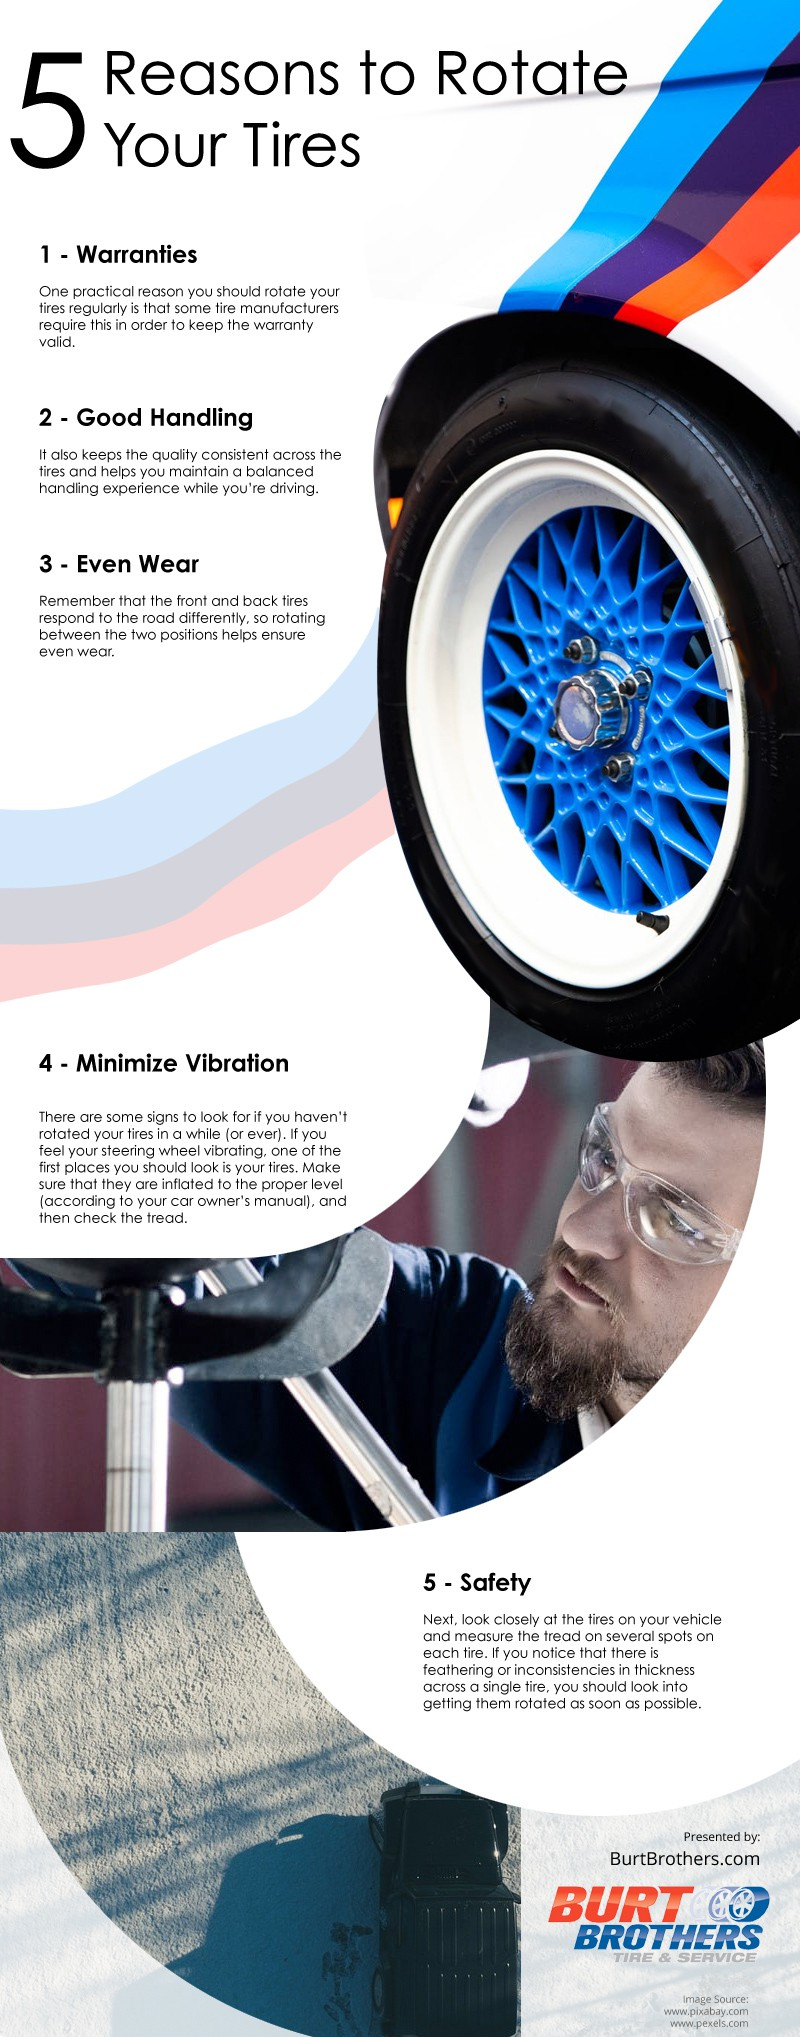 3 Things You Need to Know About Tire Rotation